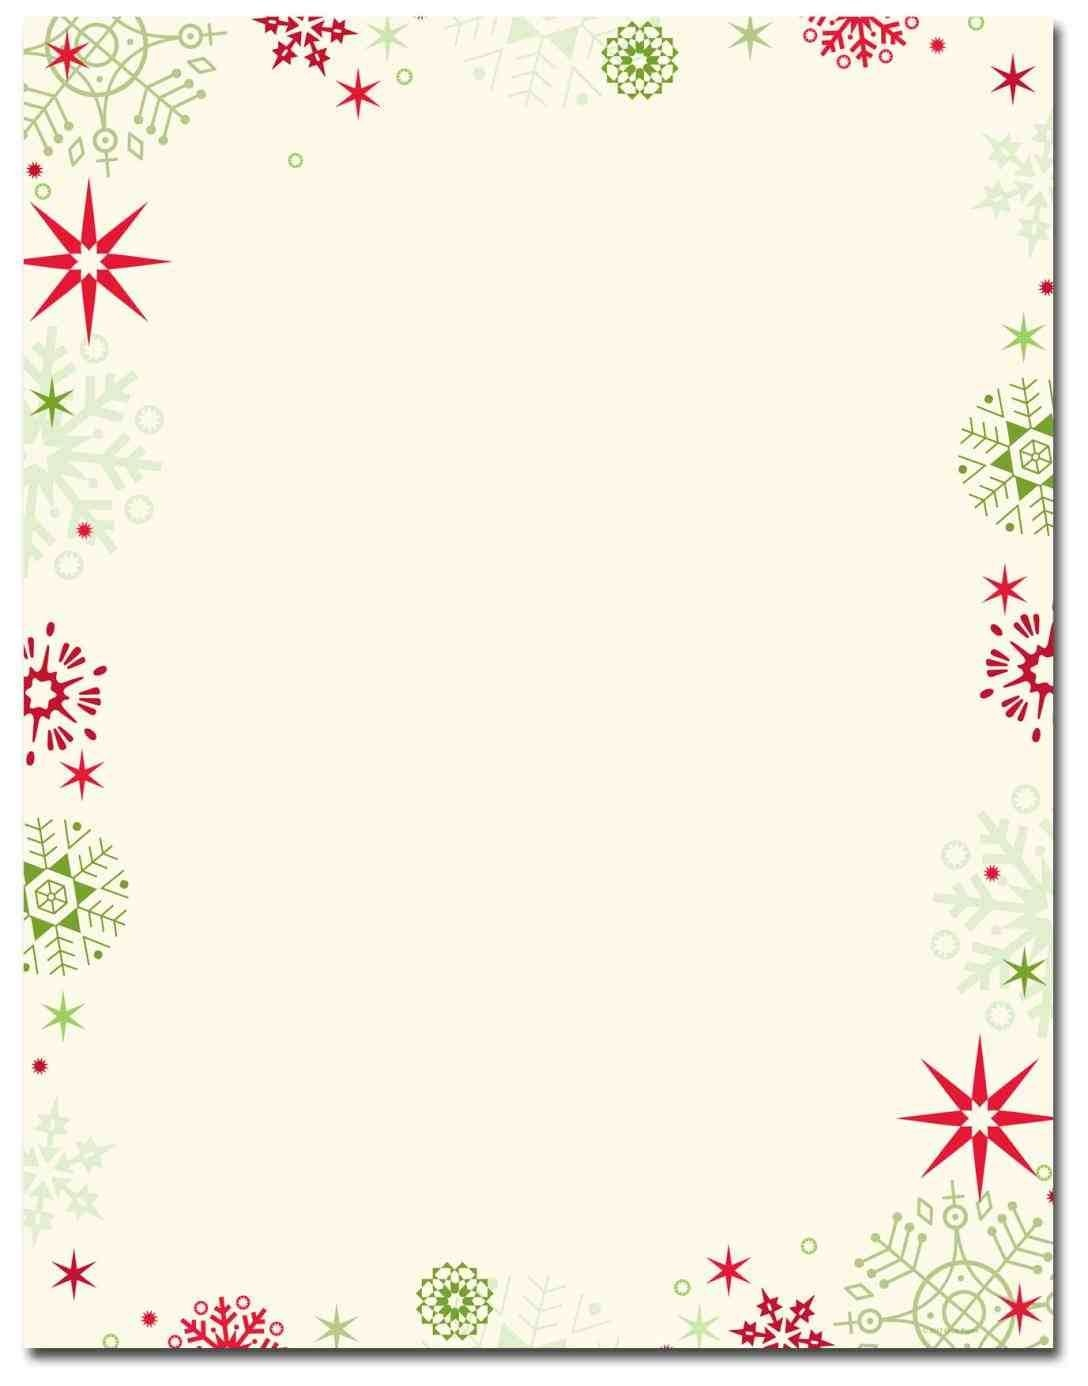 New Free Printable Christmas Stationary Borders At Temasistemi - Free Printable Christmas Stationary